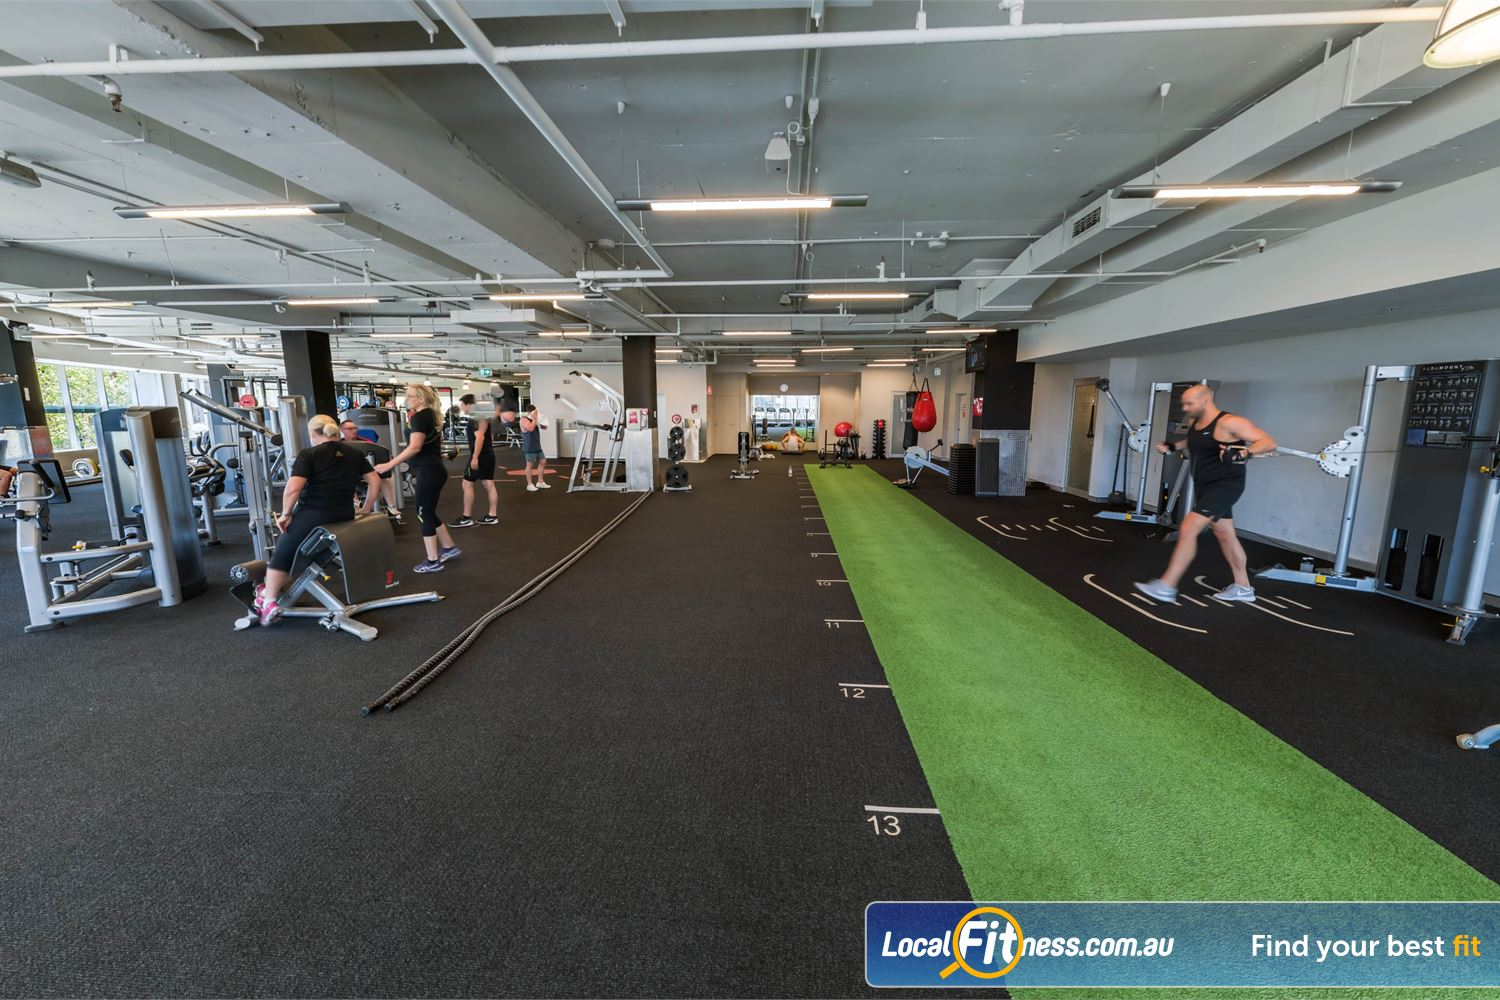 Fitness First Platinum Kings Cross Potts Point Freestyle training area with boxing area, indoor sled track, battle ropes and more.